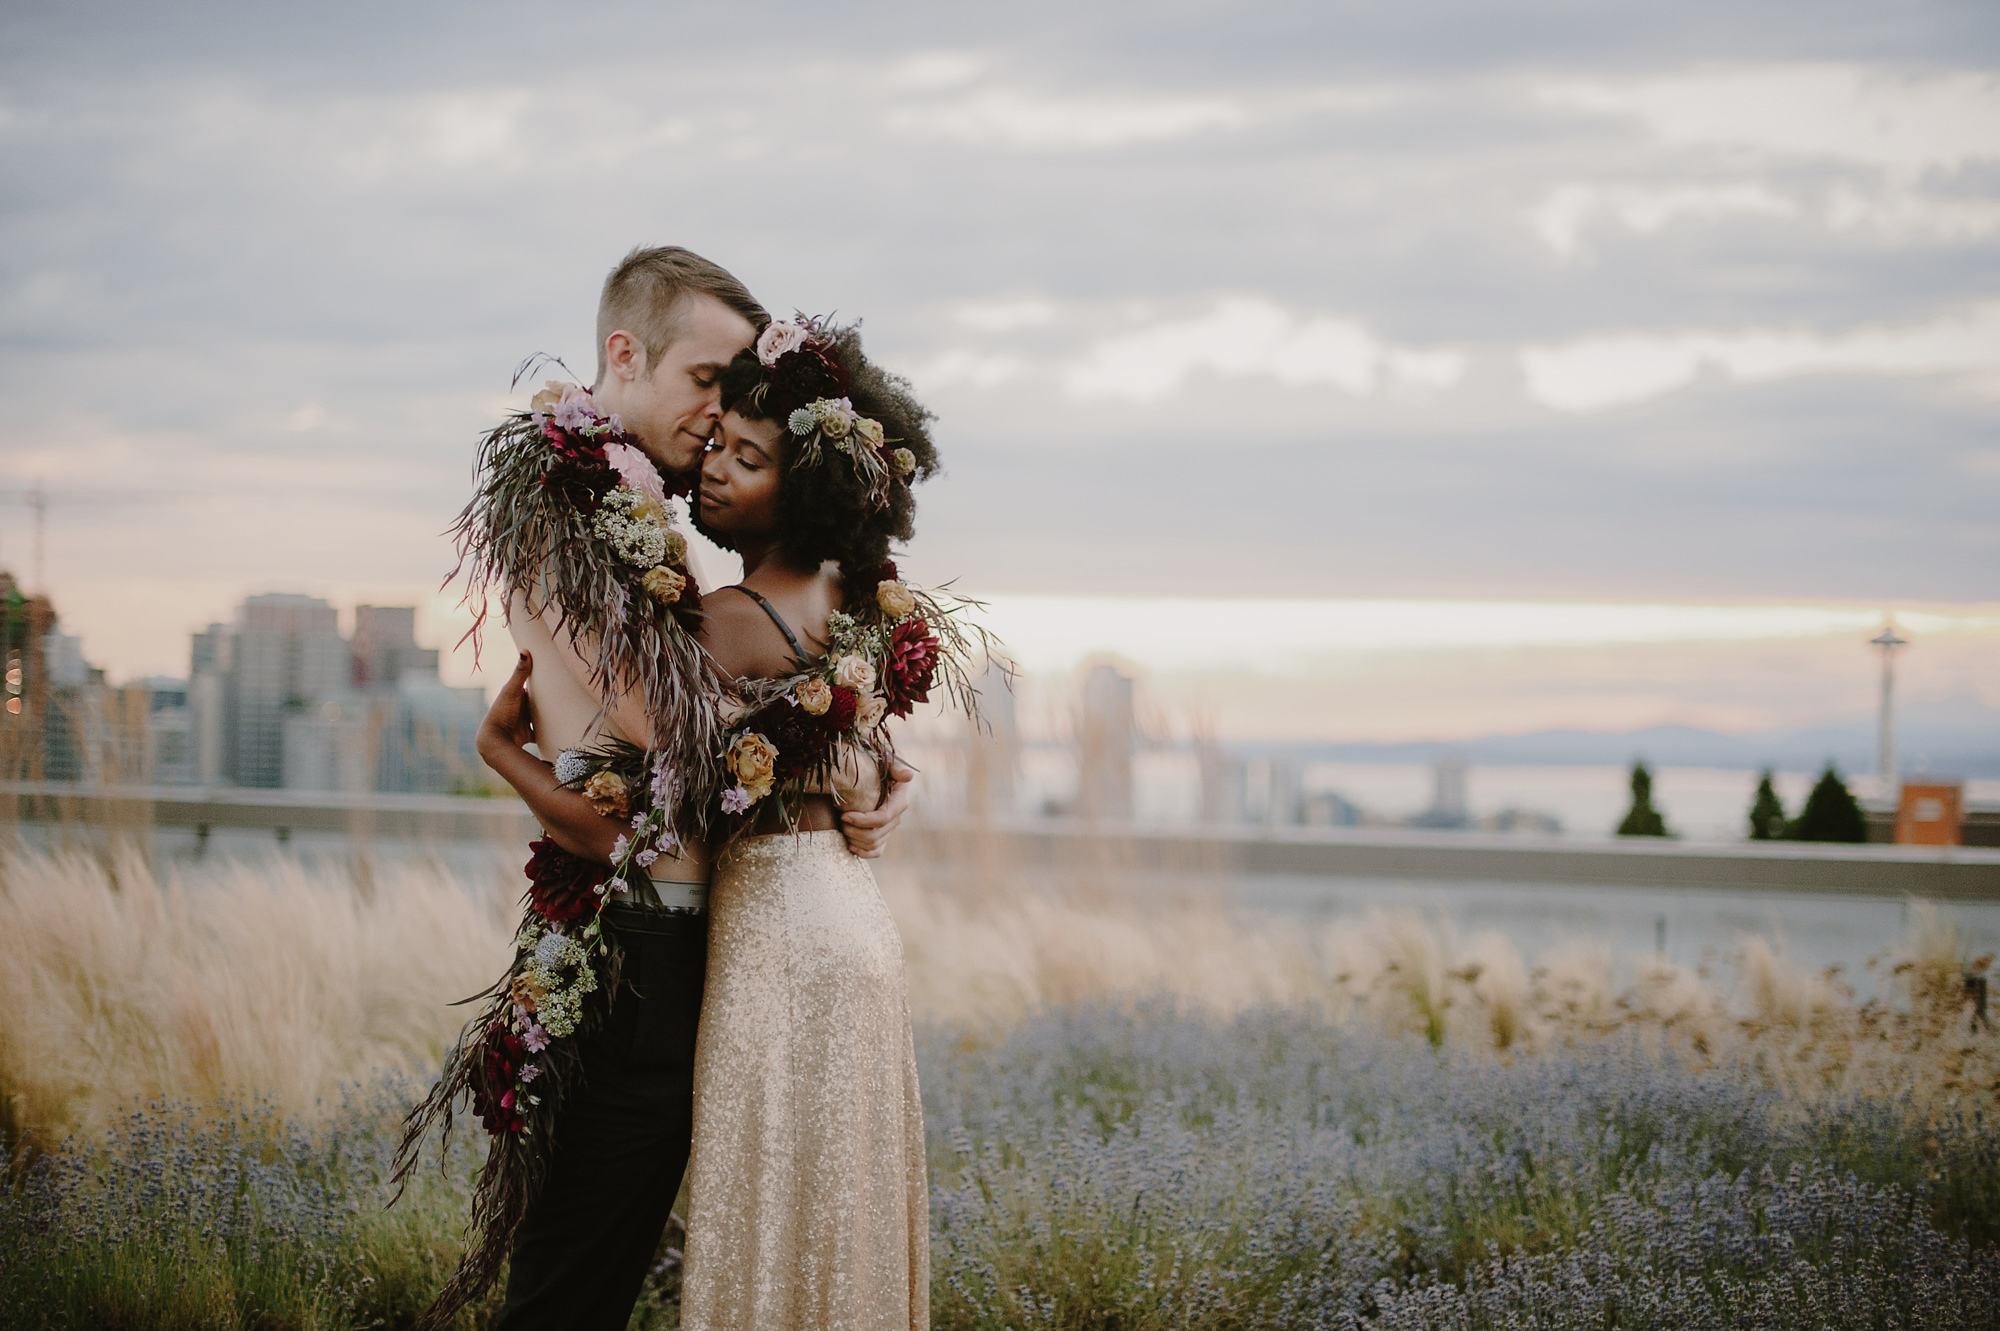 Couple wrapped in long rustic floral garland - photo by Kristen Marie Parket